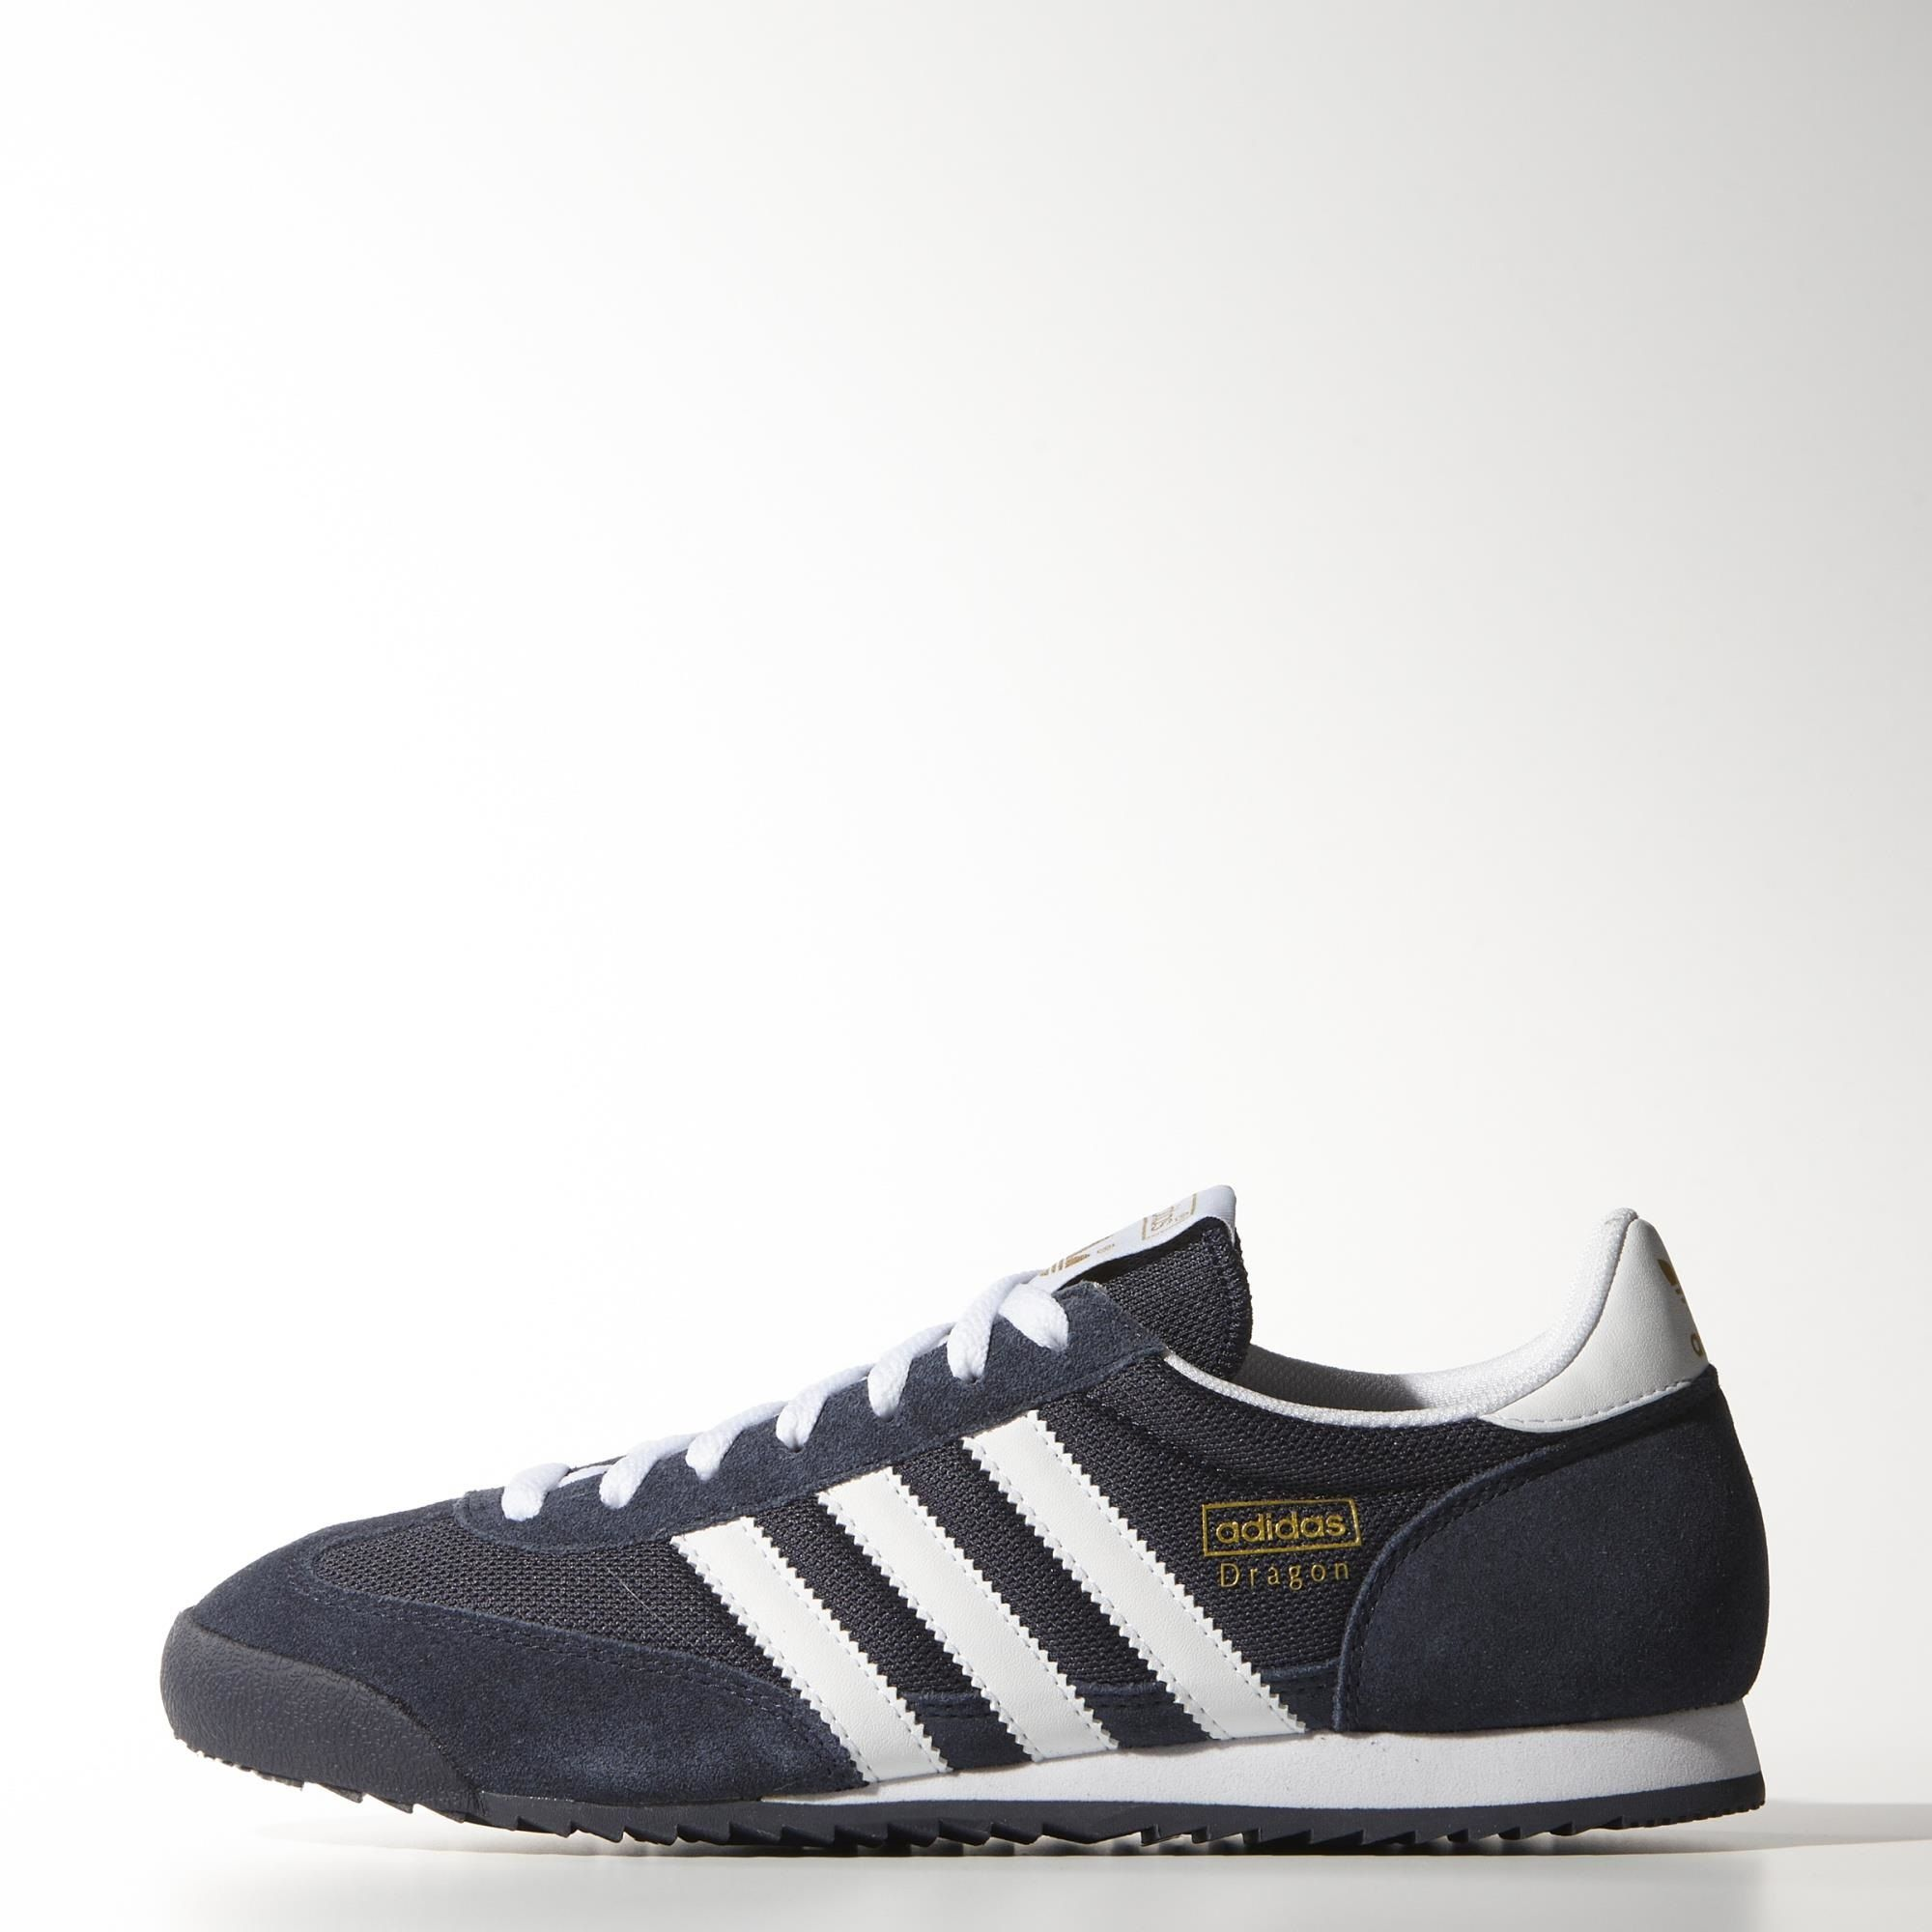 adidas dragon trainers black mono gold metallic